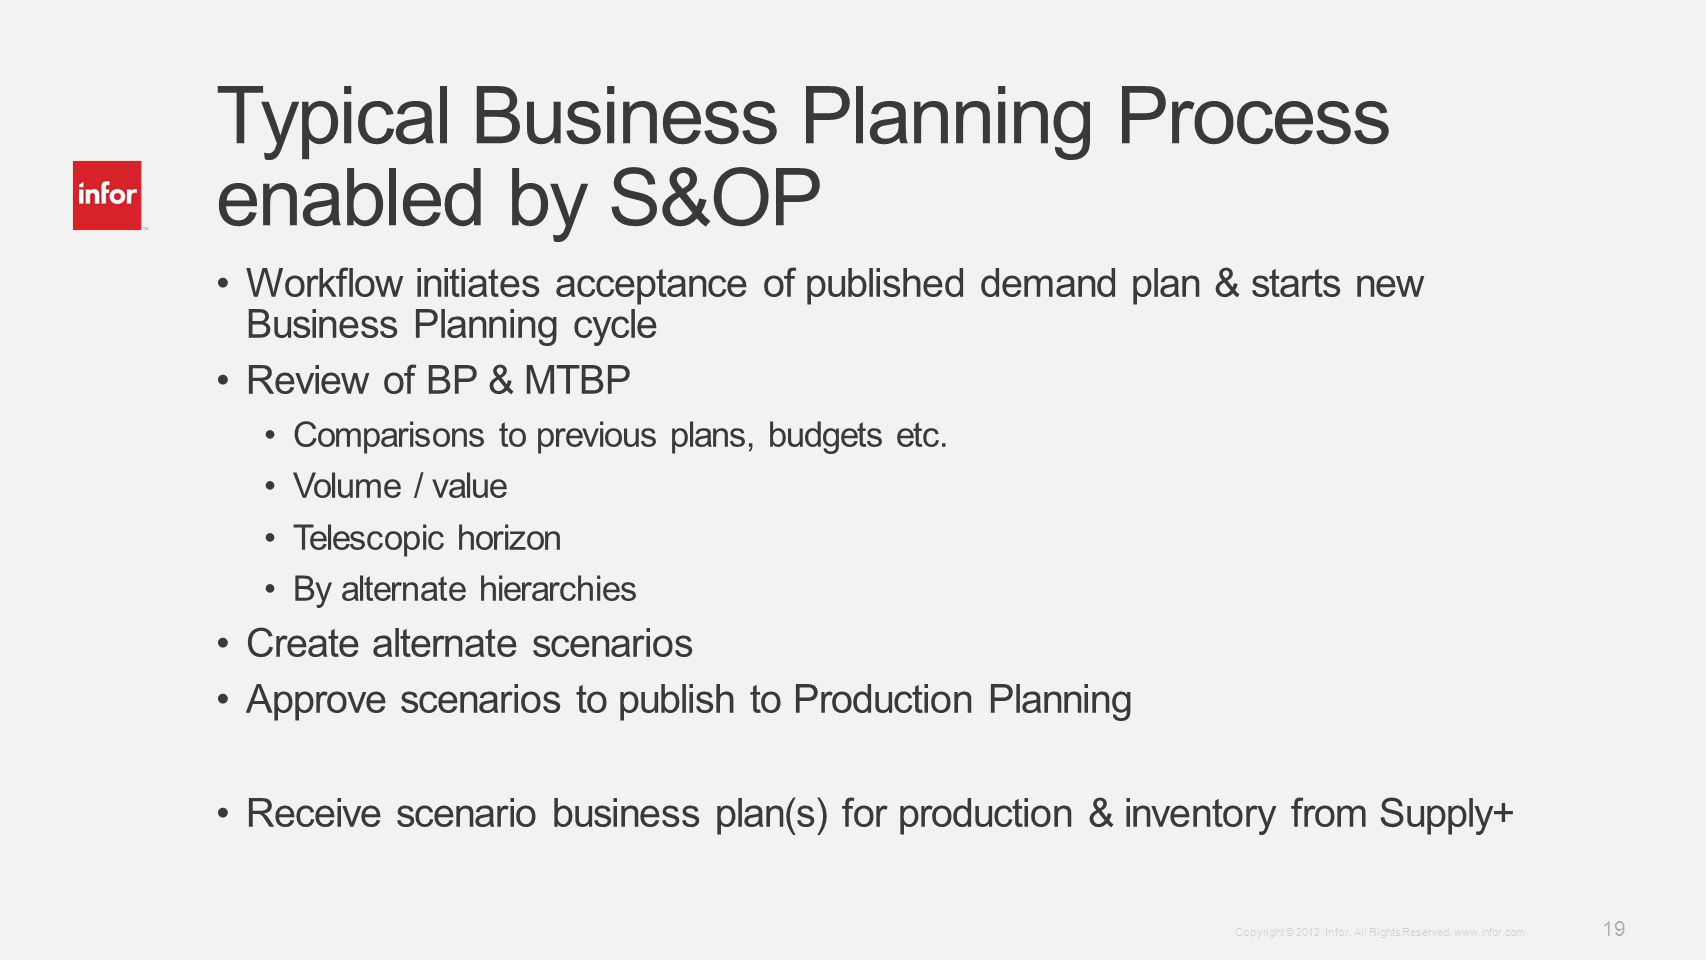 Typical Business Planning Process enabled by S&OP